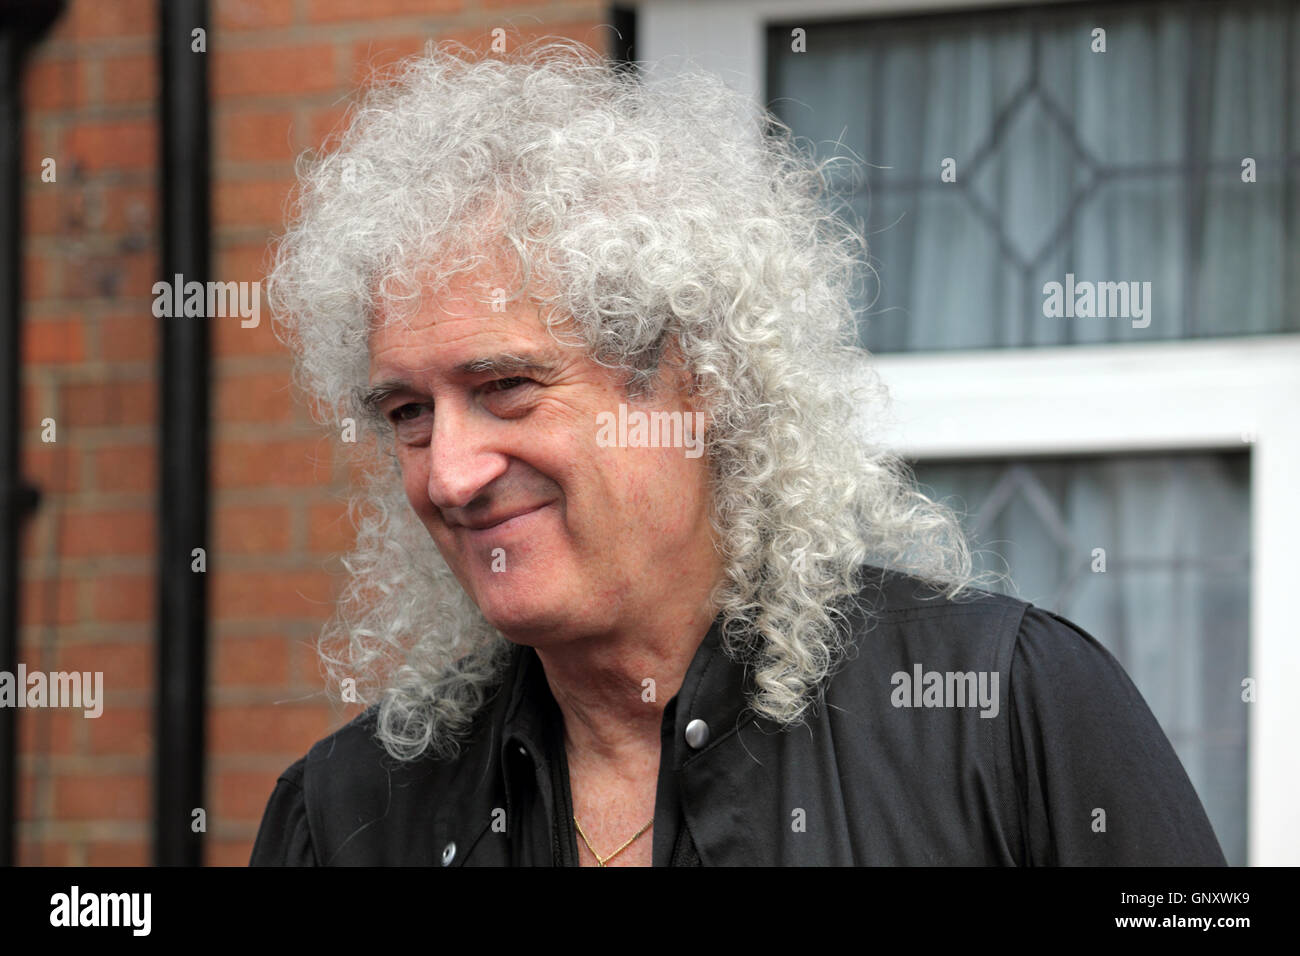 Feltham, London, England, UK. 1st September 2016.  Brian May from rock group Queen unveiled an English Heritage Blue Plaque for the former lead singer Freddie Mercury. On what would have been Freddie's 70th birthday the Blue Plaque showing his birth name Fred Bulsara was unveiled on his former home at Feltham in West London, where he lived with his family in the 1970's. Credit:  Julia Gavin UK/Alamy Live News Stock Photo